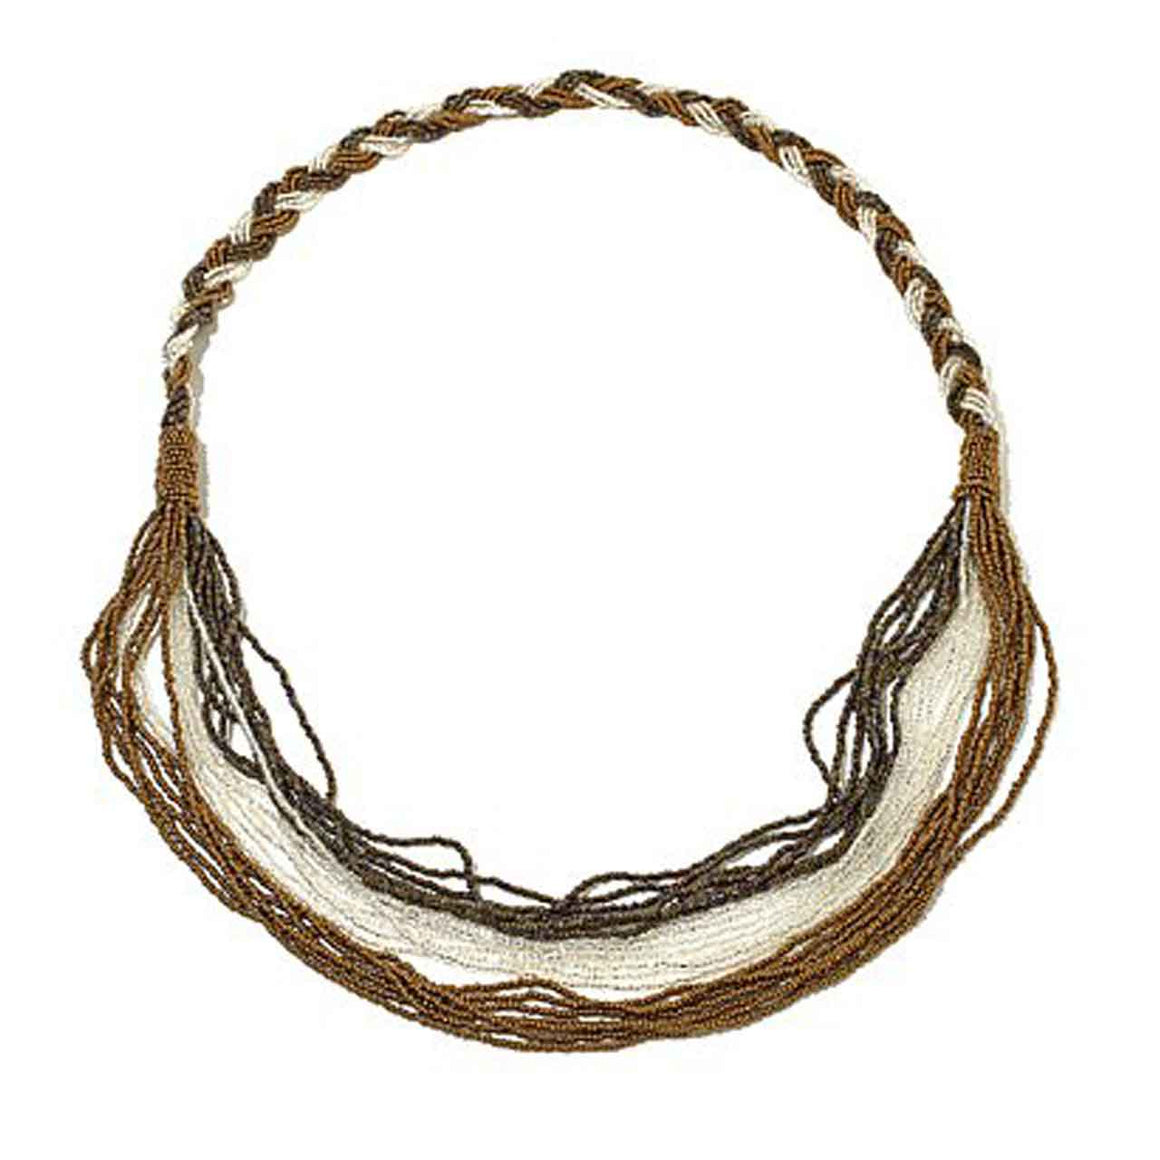 Bronze Potay Braided Waterfall Necklace